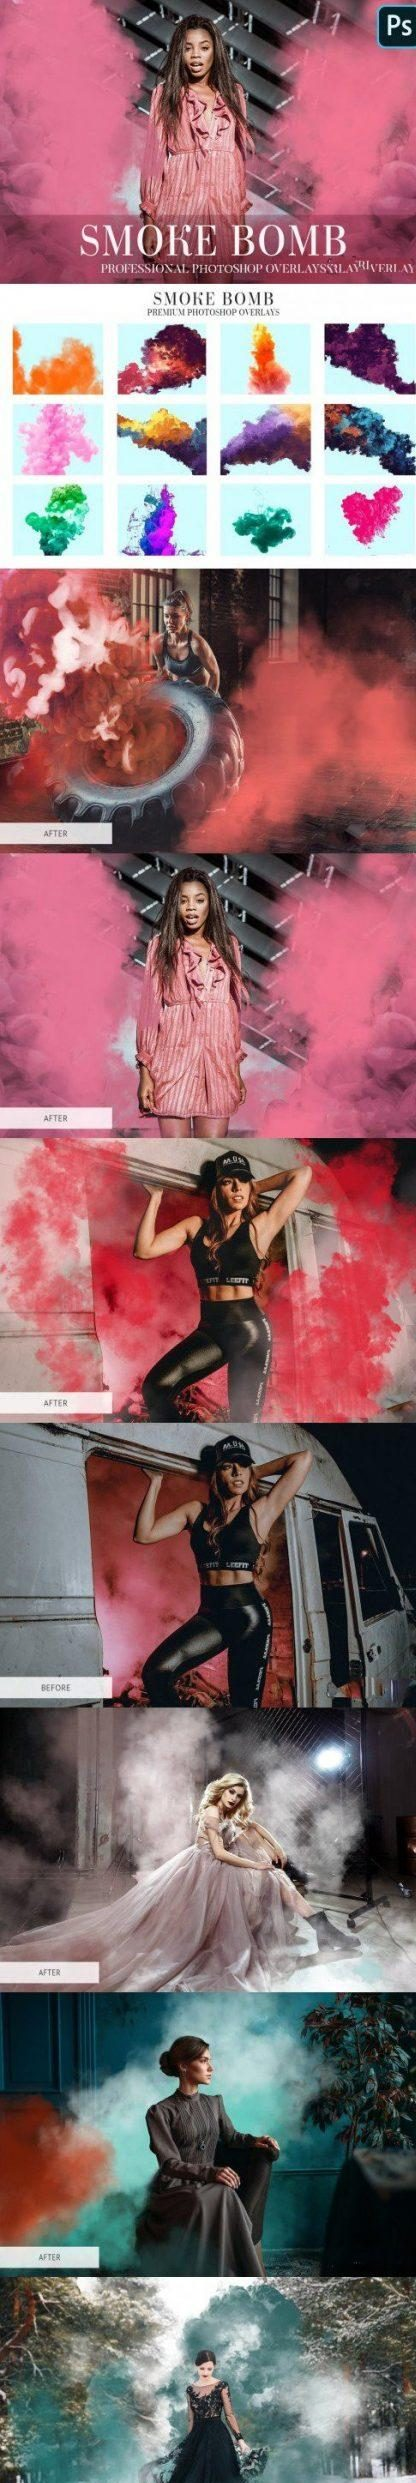 CreativeMarket – Smoke Bomb Overlays Photoshop 4940685 Free Download